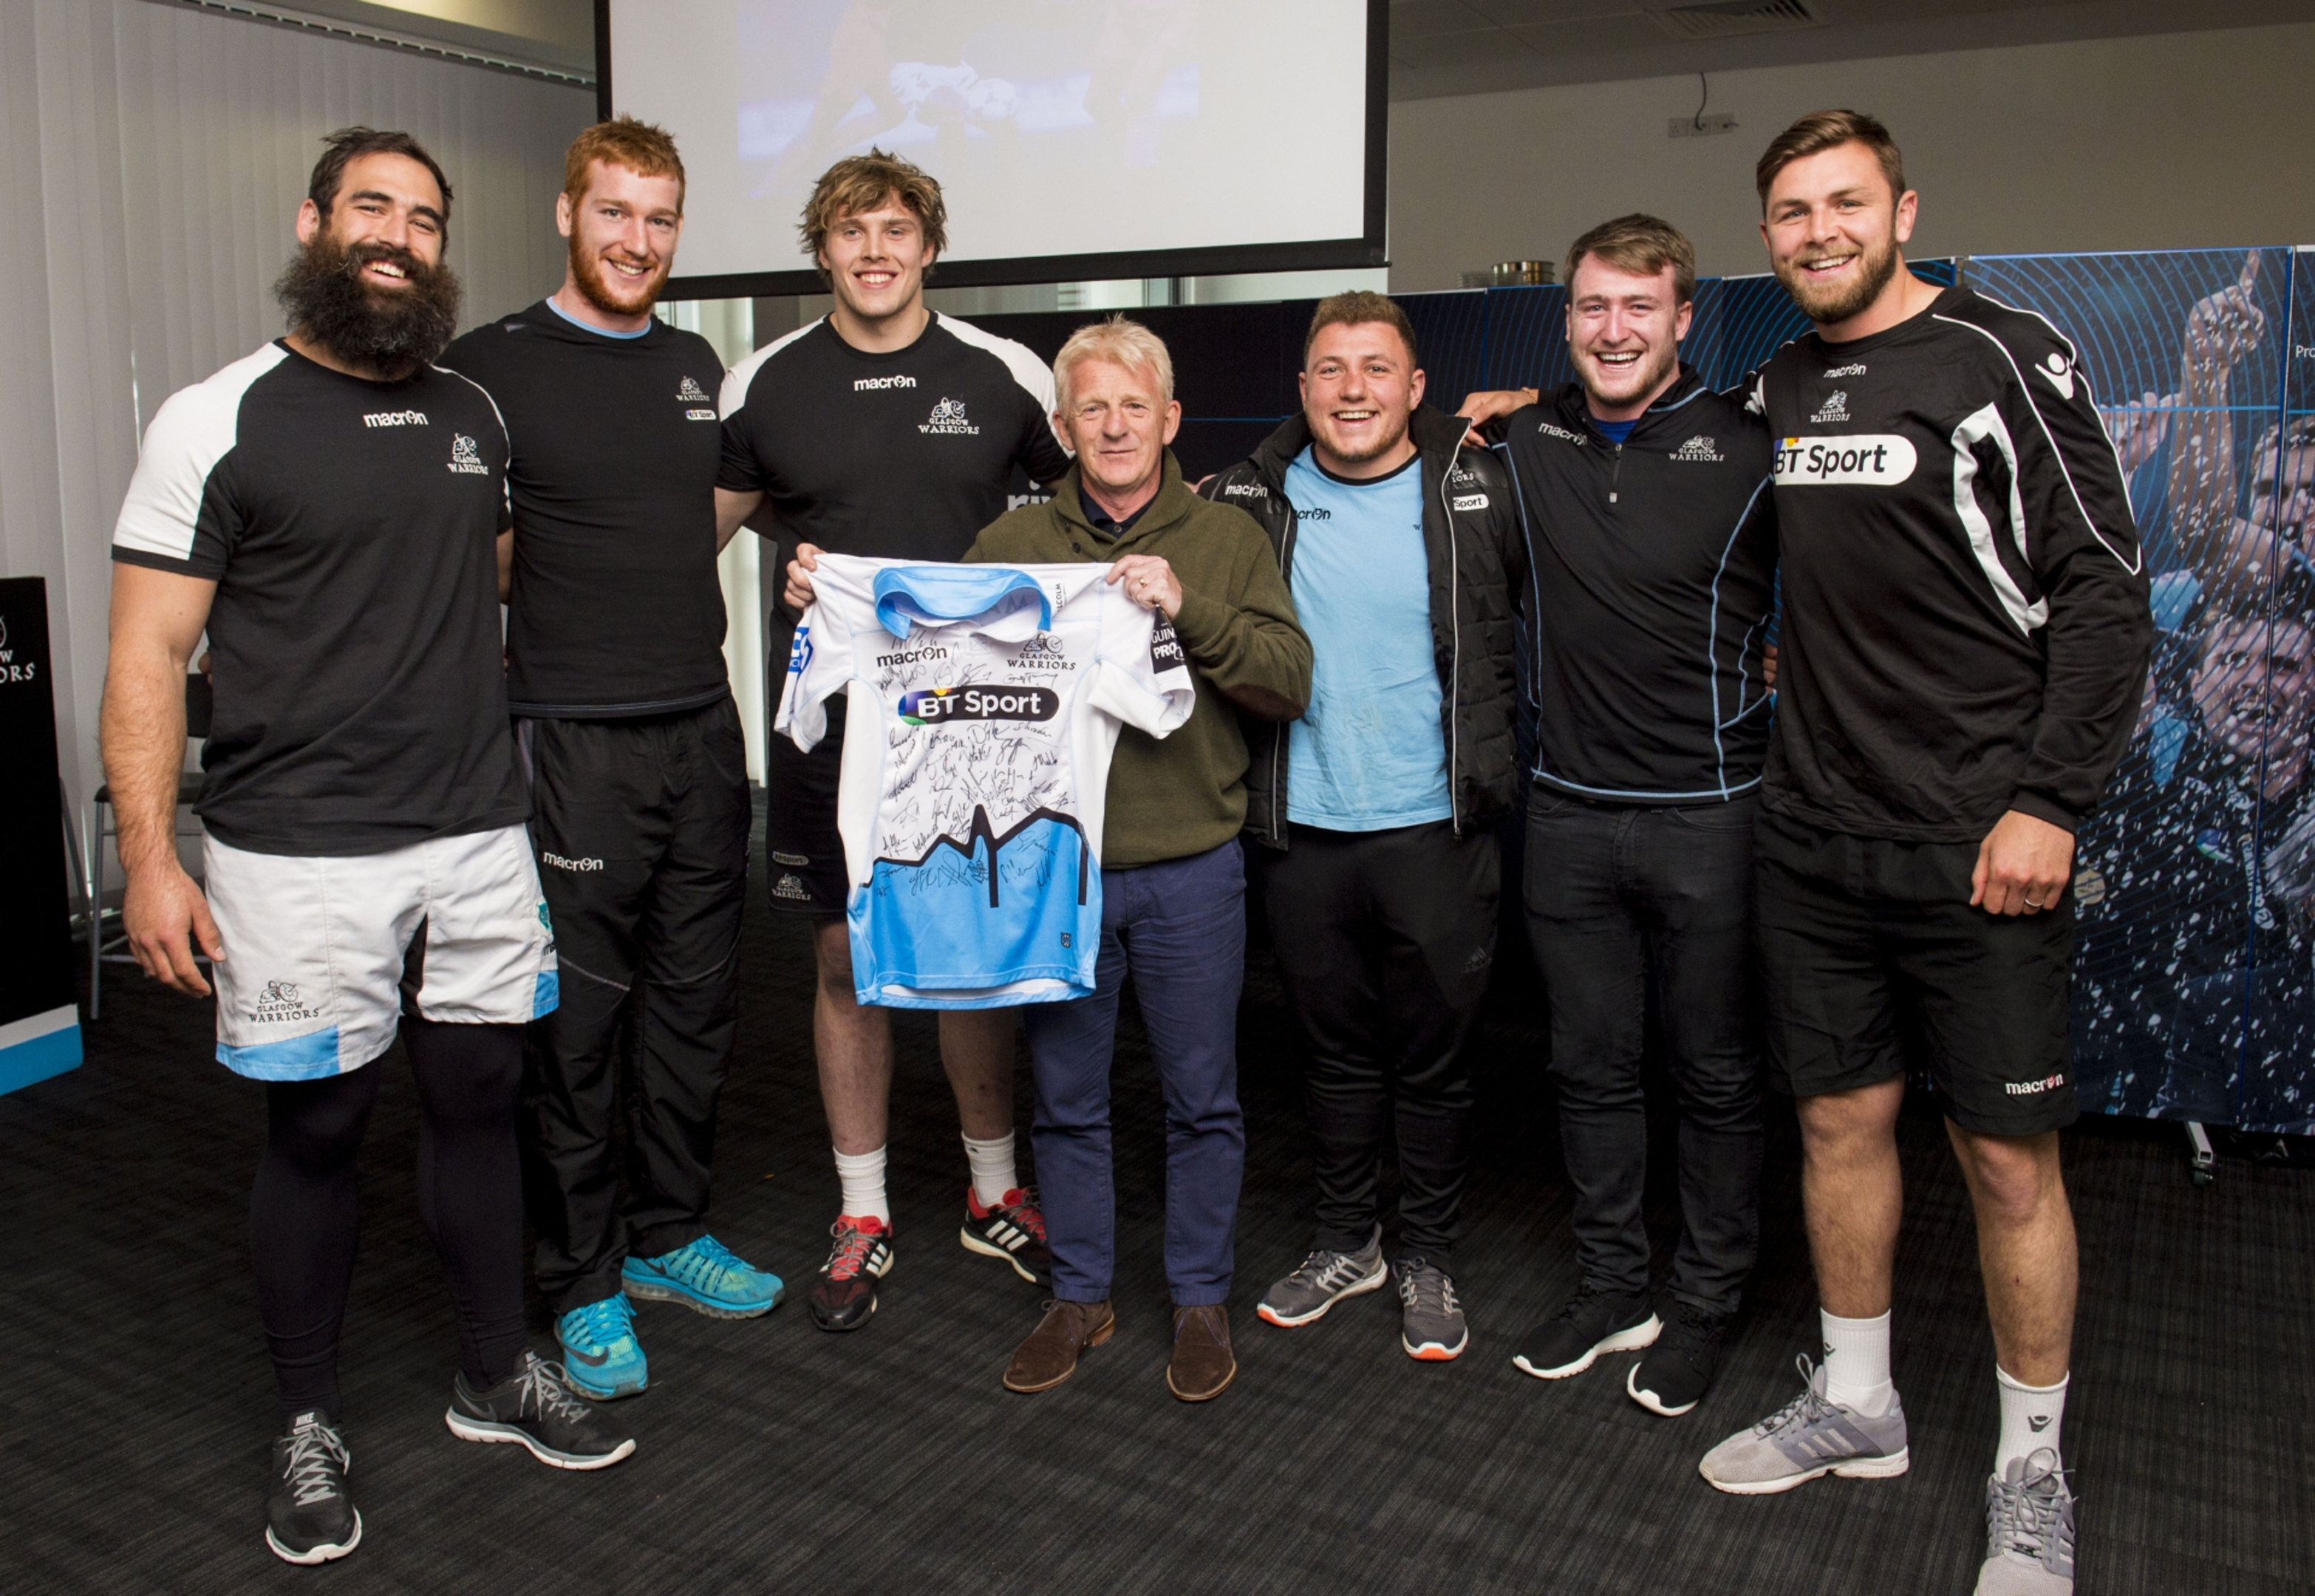 Scotland manager Gordon Strachan at Scotstoun with (L to R) Josh Strauss, Rob Harley, Jonny Gray, Duncan Weir, Stuart Hogg and Ryan Wilson. Pic: SNS/SRU